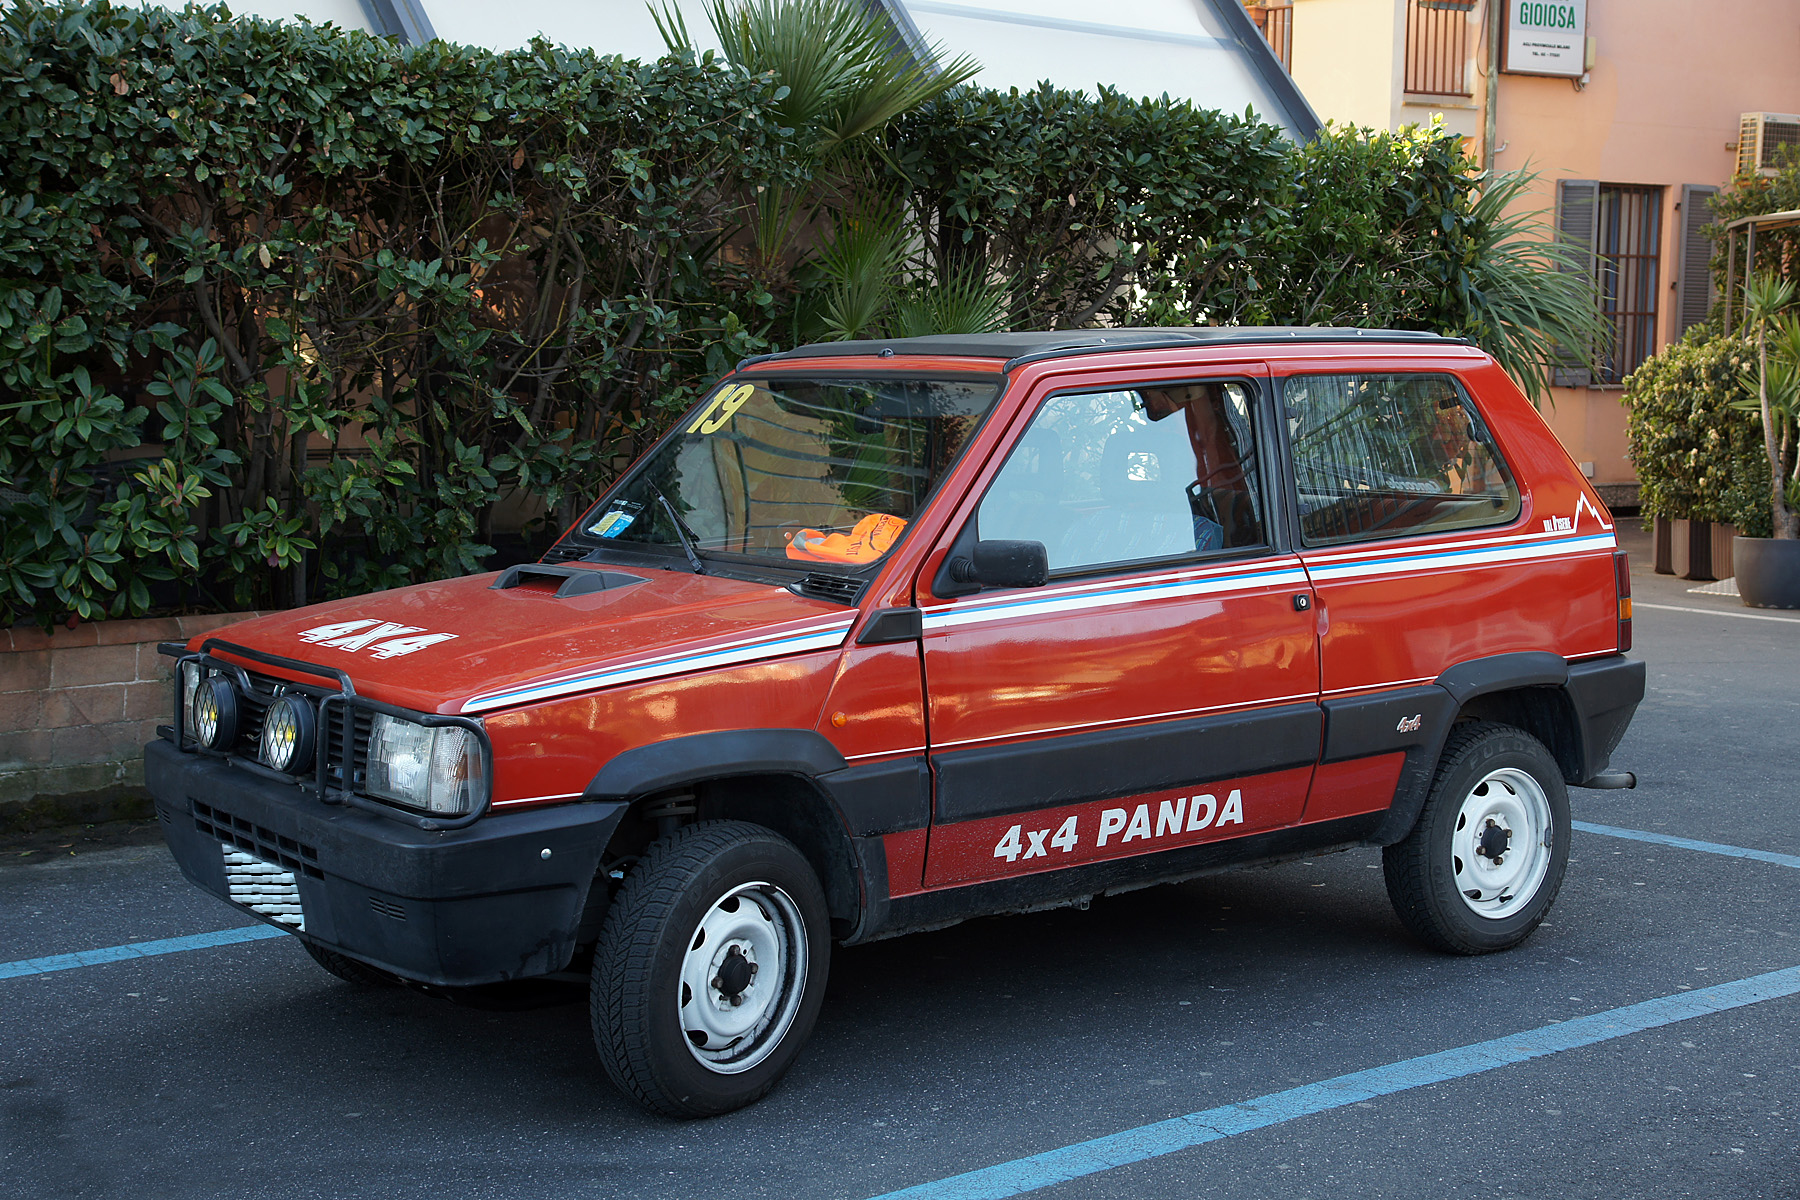 Fiat Panda 4x4 Val D'Isère | Flickr - Photo Sharing!